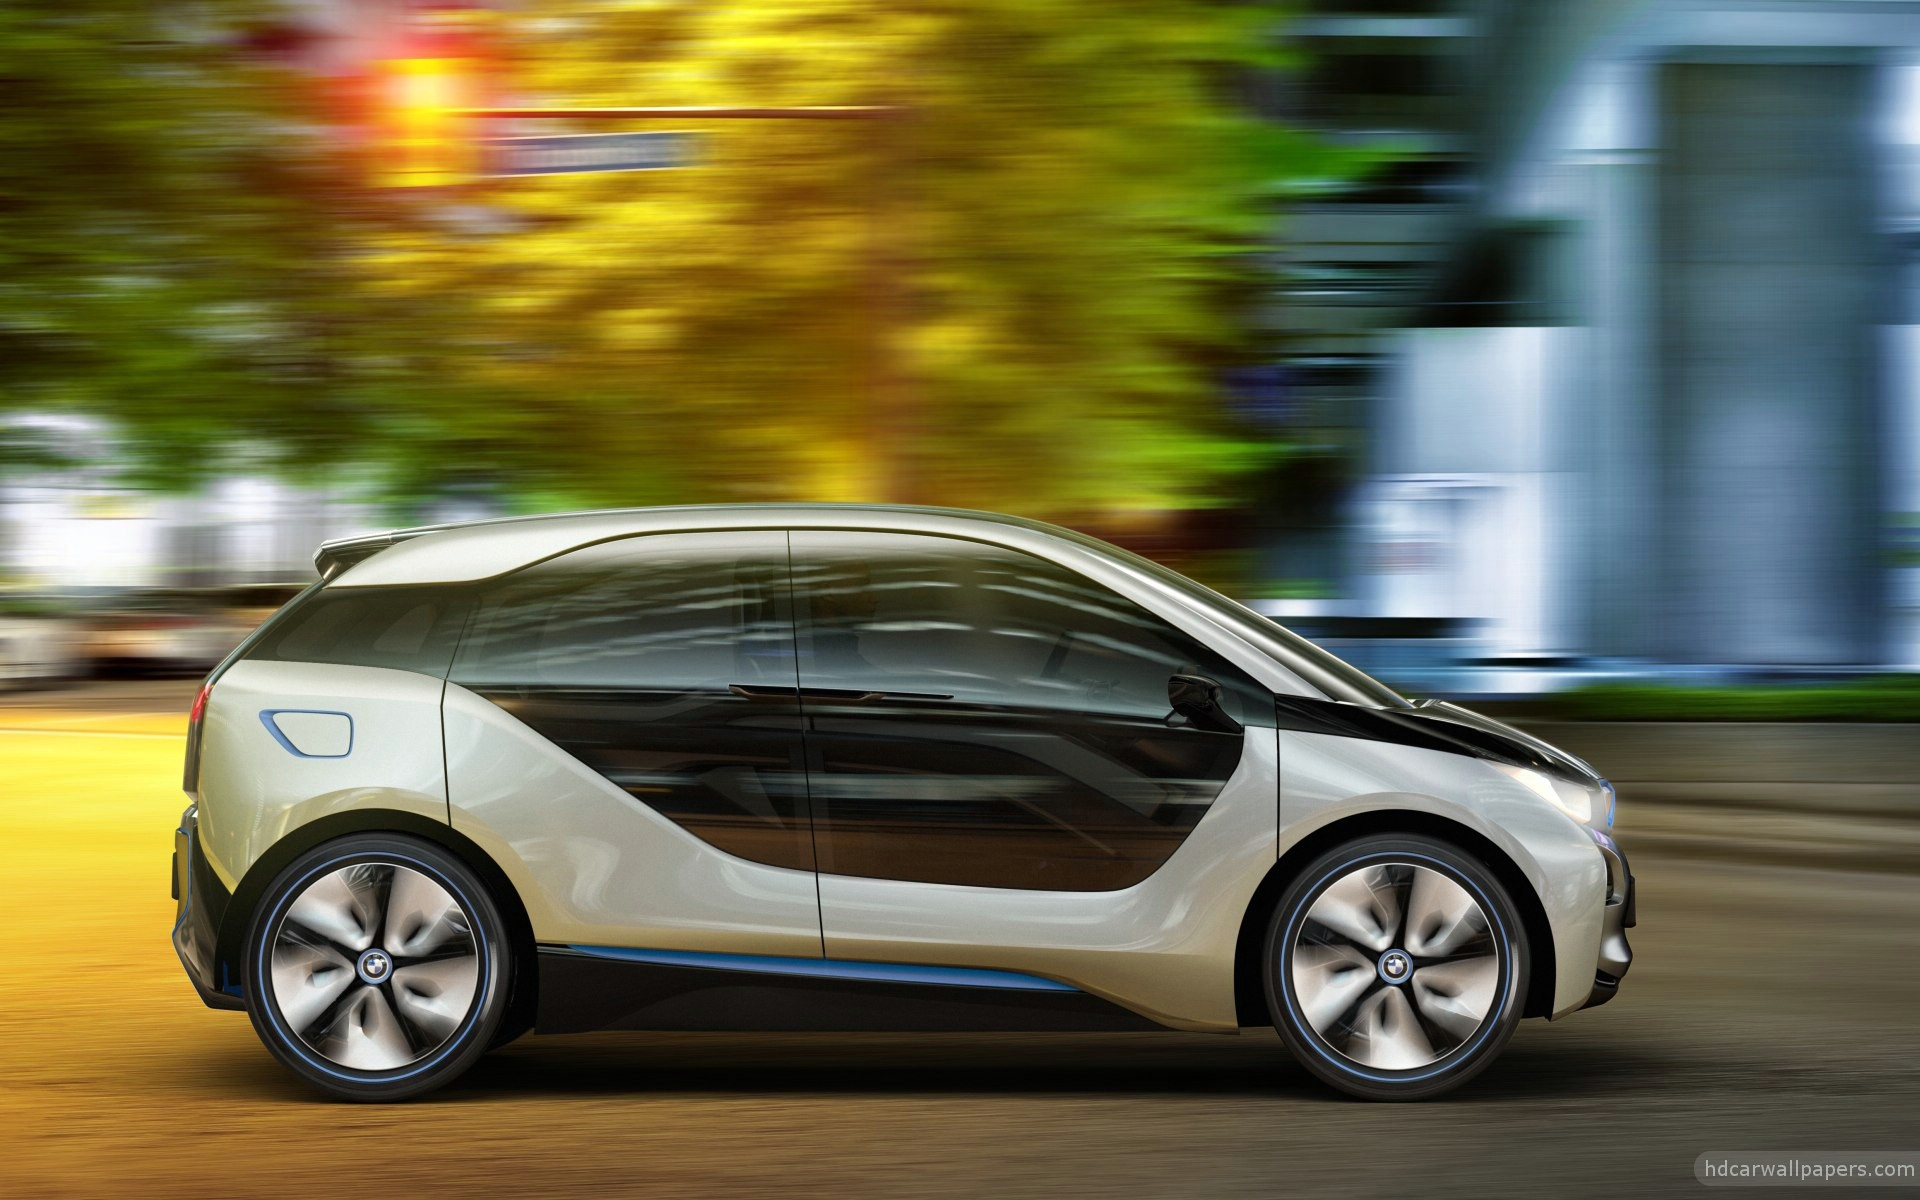 1920x1200 - BMW i3 Concept Wallpapers 38